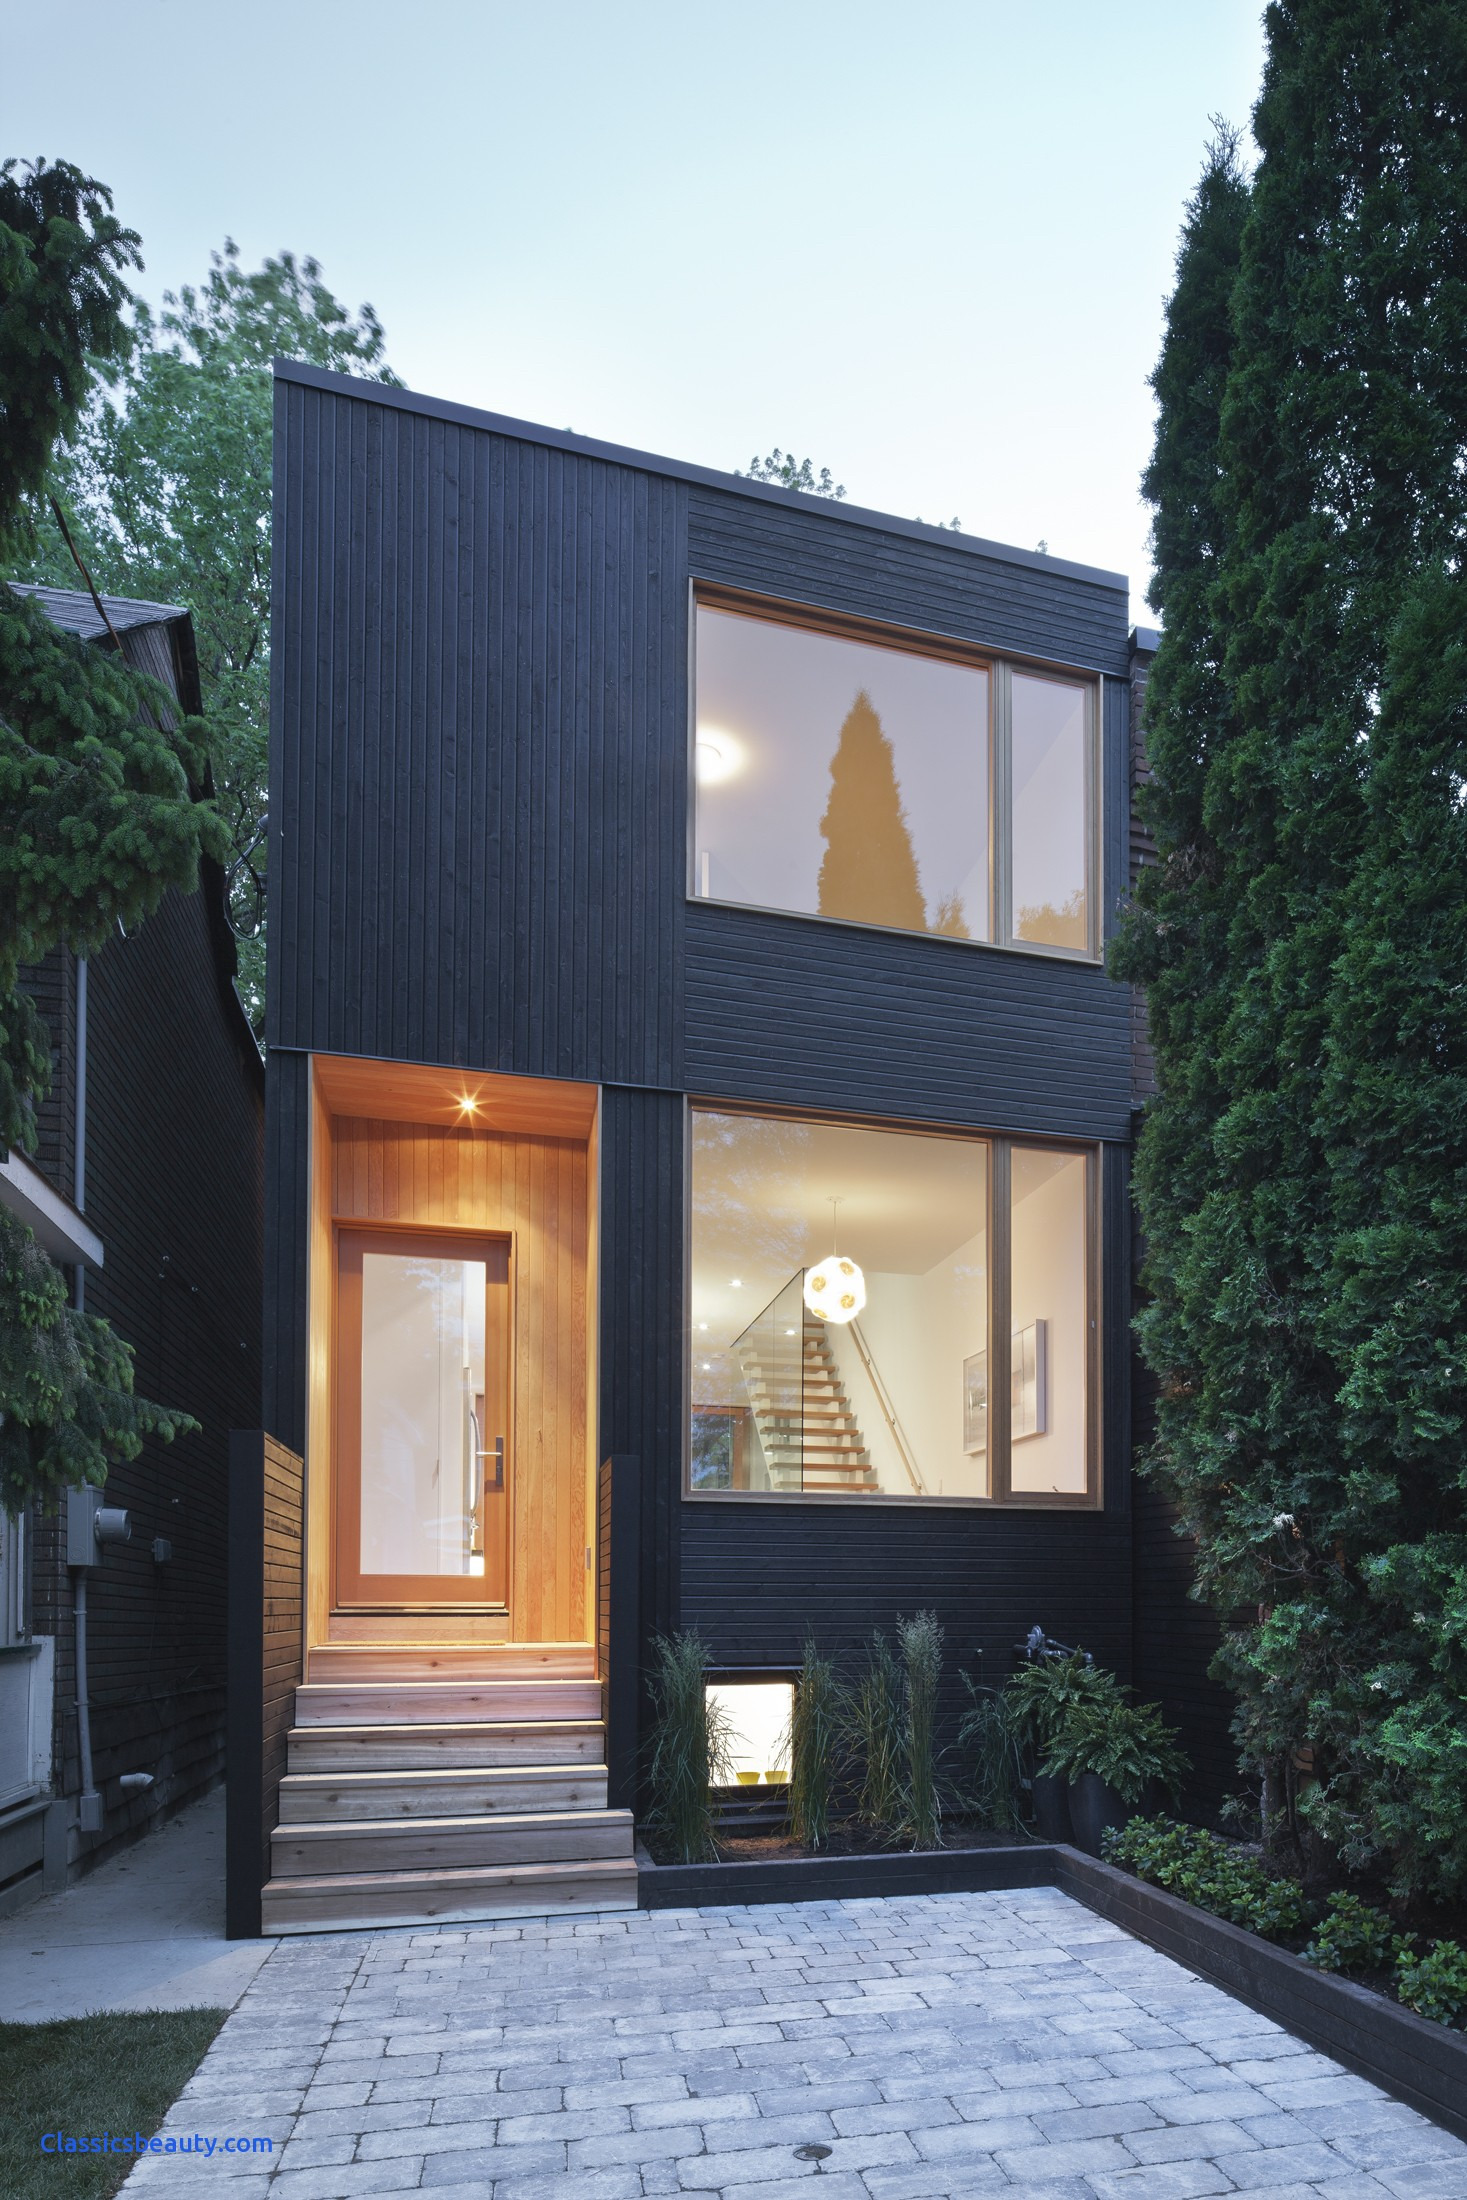 Small Affordable Houses to Build Unique Small Affordable Homes Elegant top Modular Inexpensive